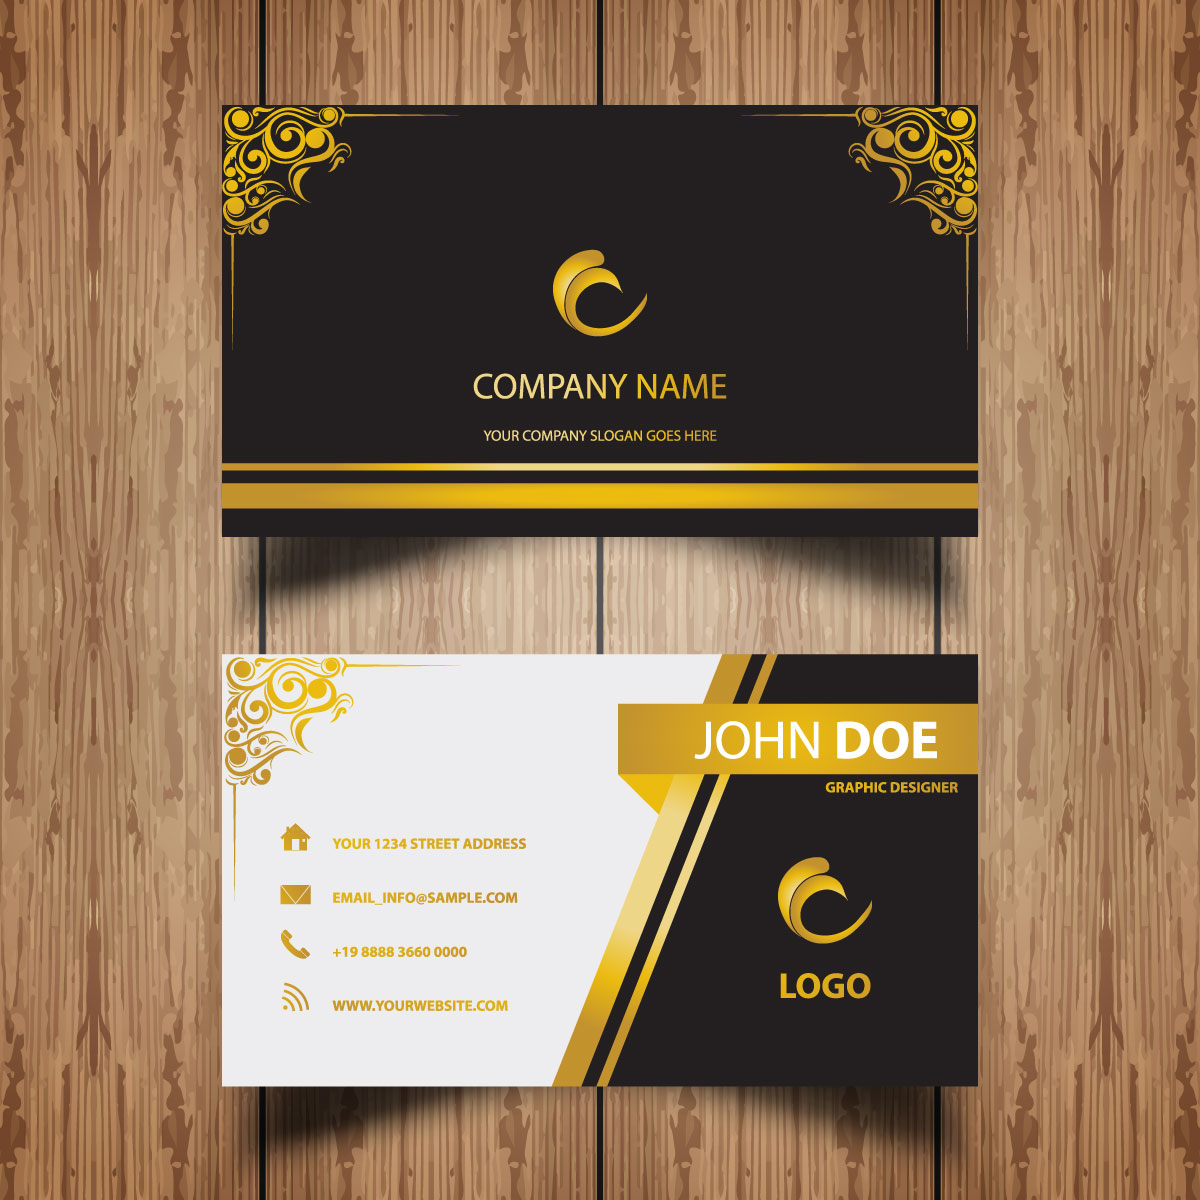 11 Business Card Golden Ornaments